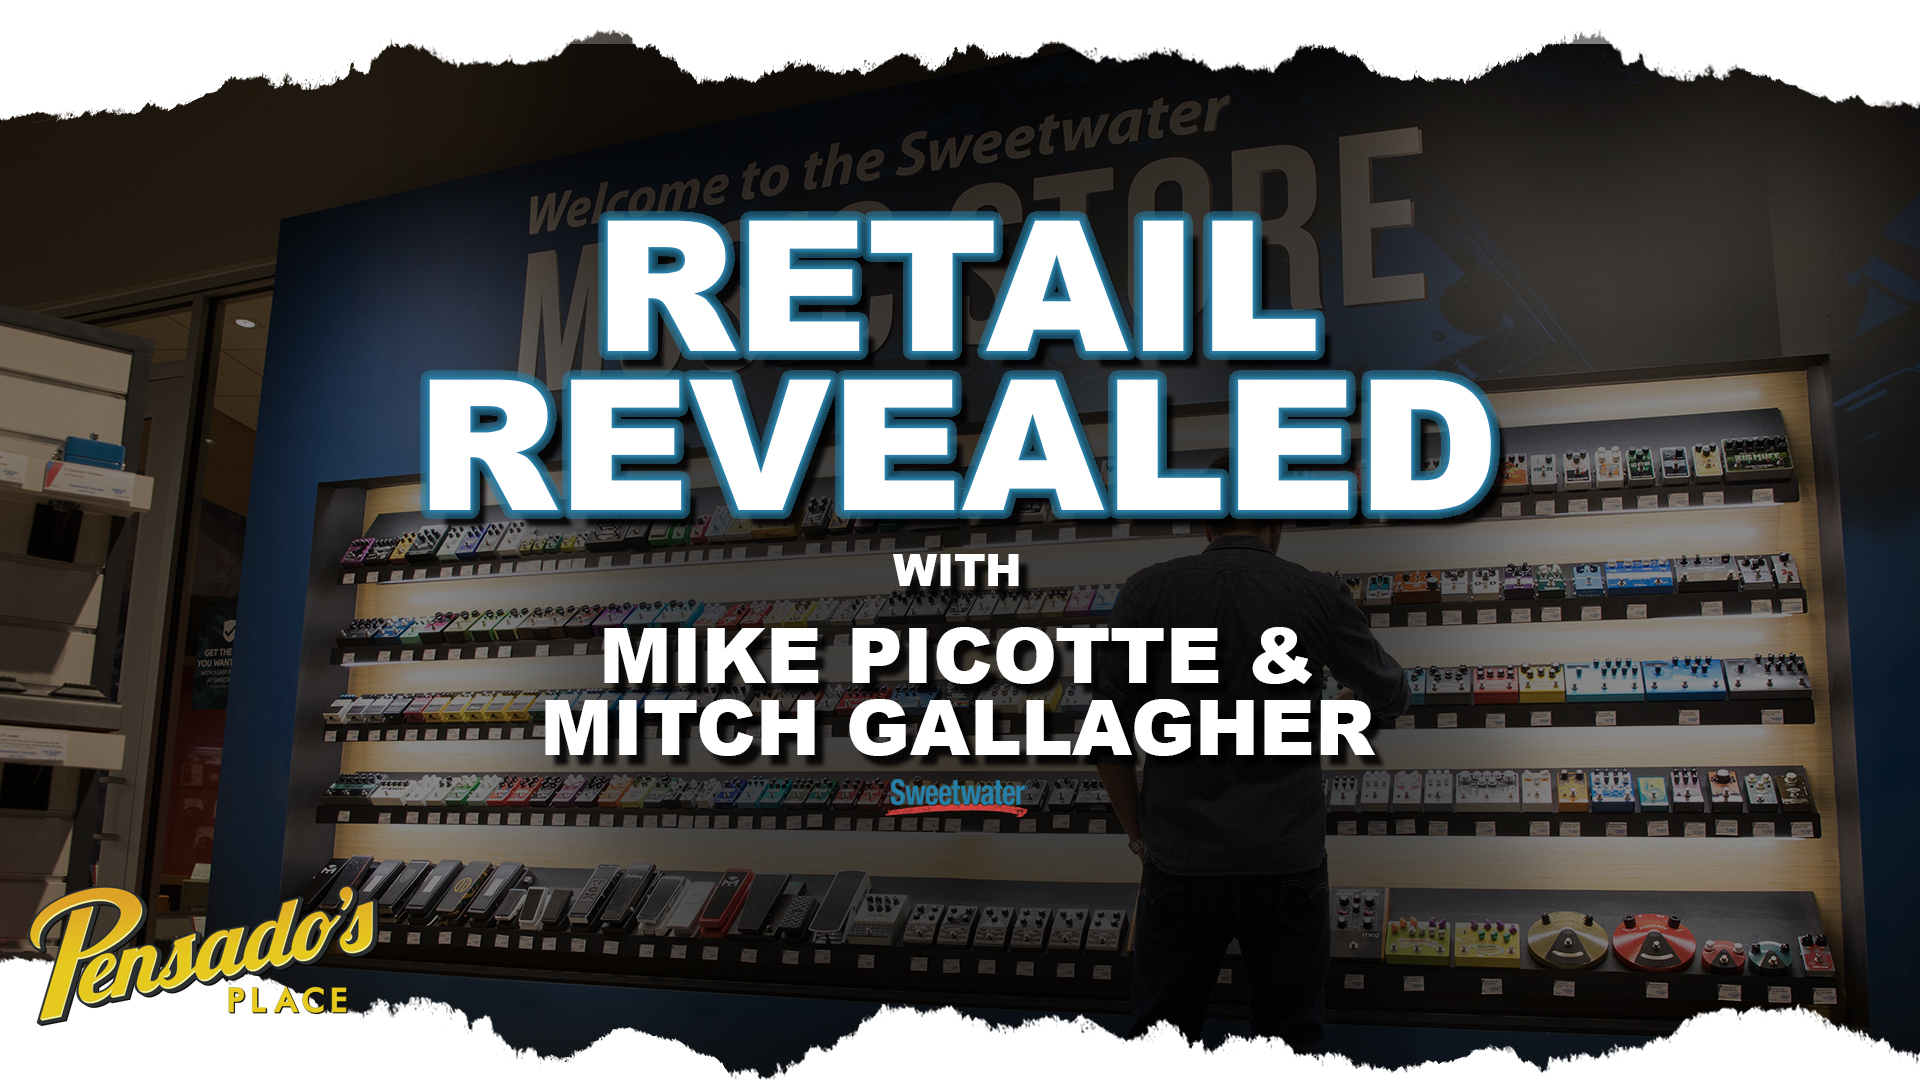 Retail Revealed with Mitch Gallagher & Mike Picotte of Sweetwater